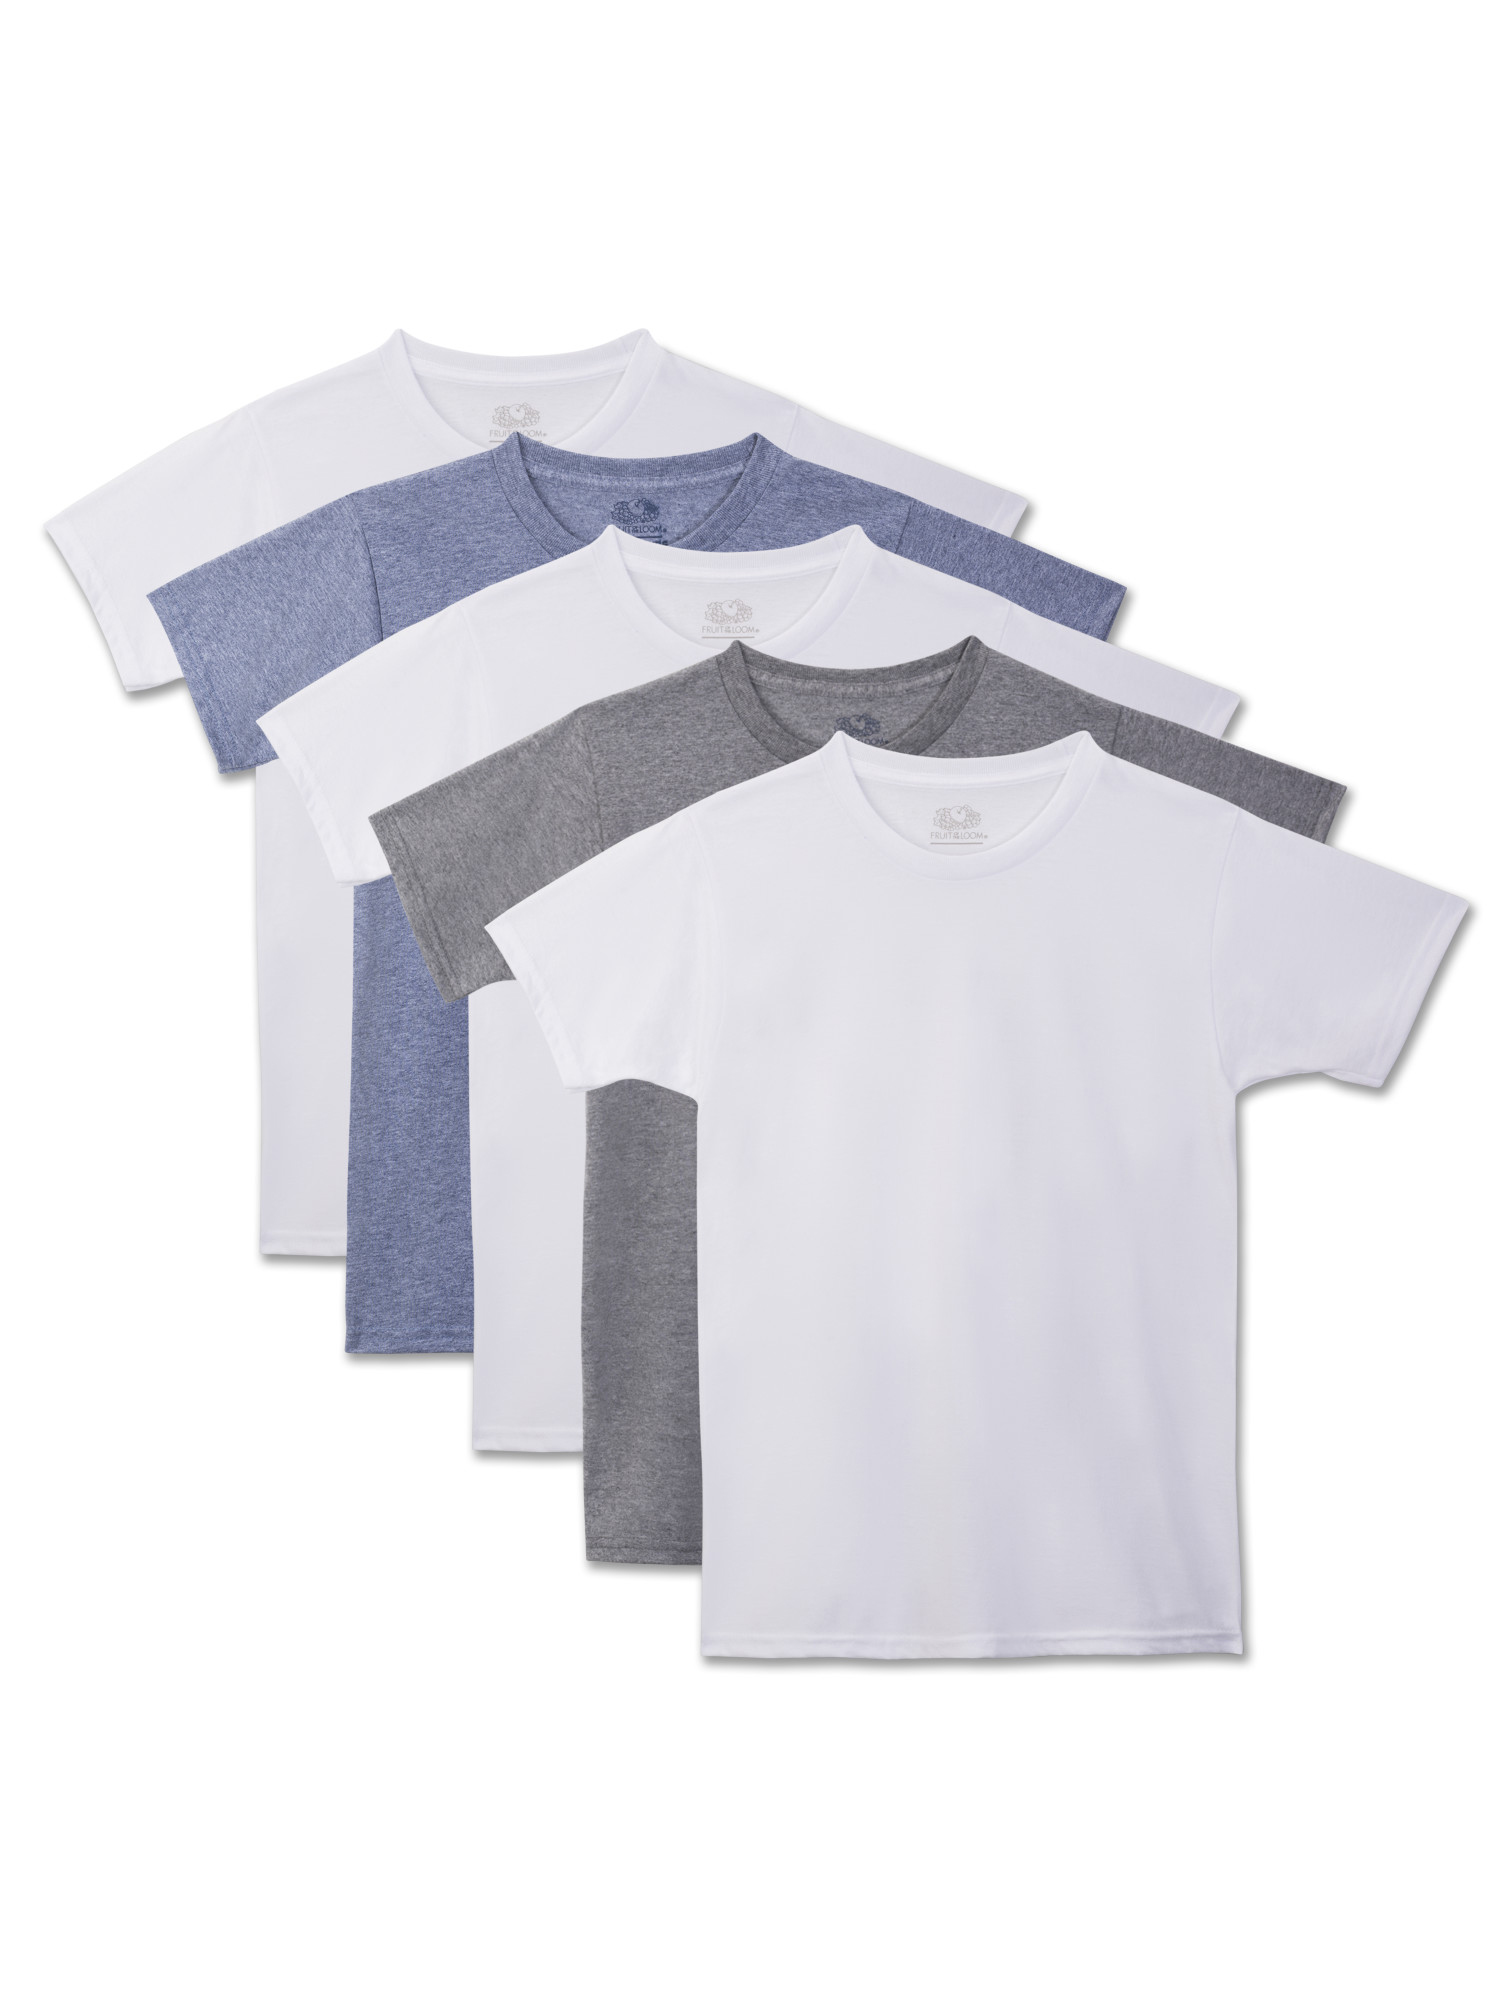 Beyond Soft Crew T-Shirts, 5 Pack (Little Boys & Big Boys)